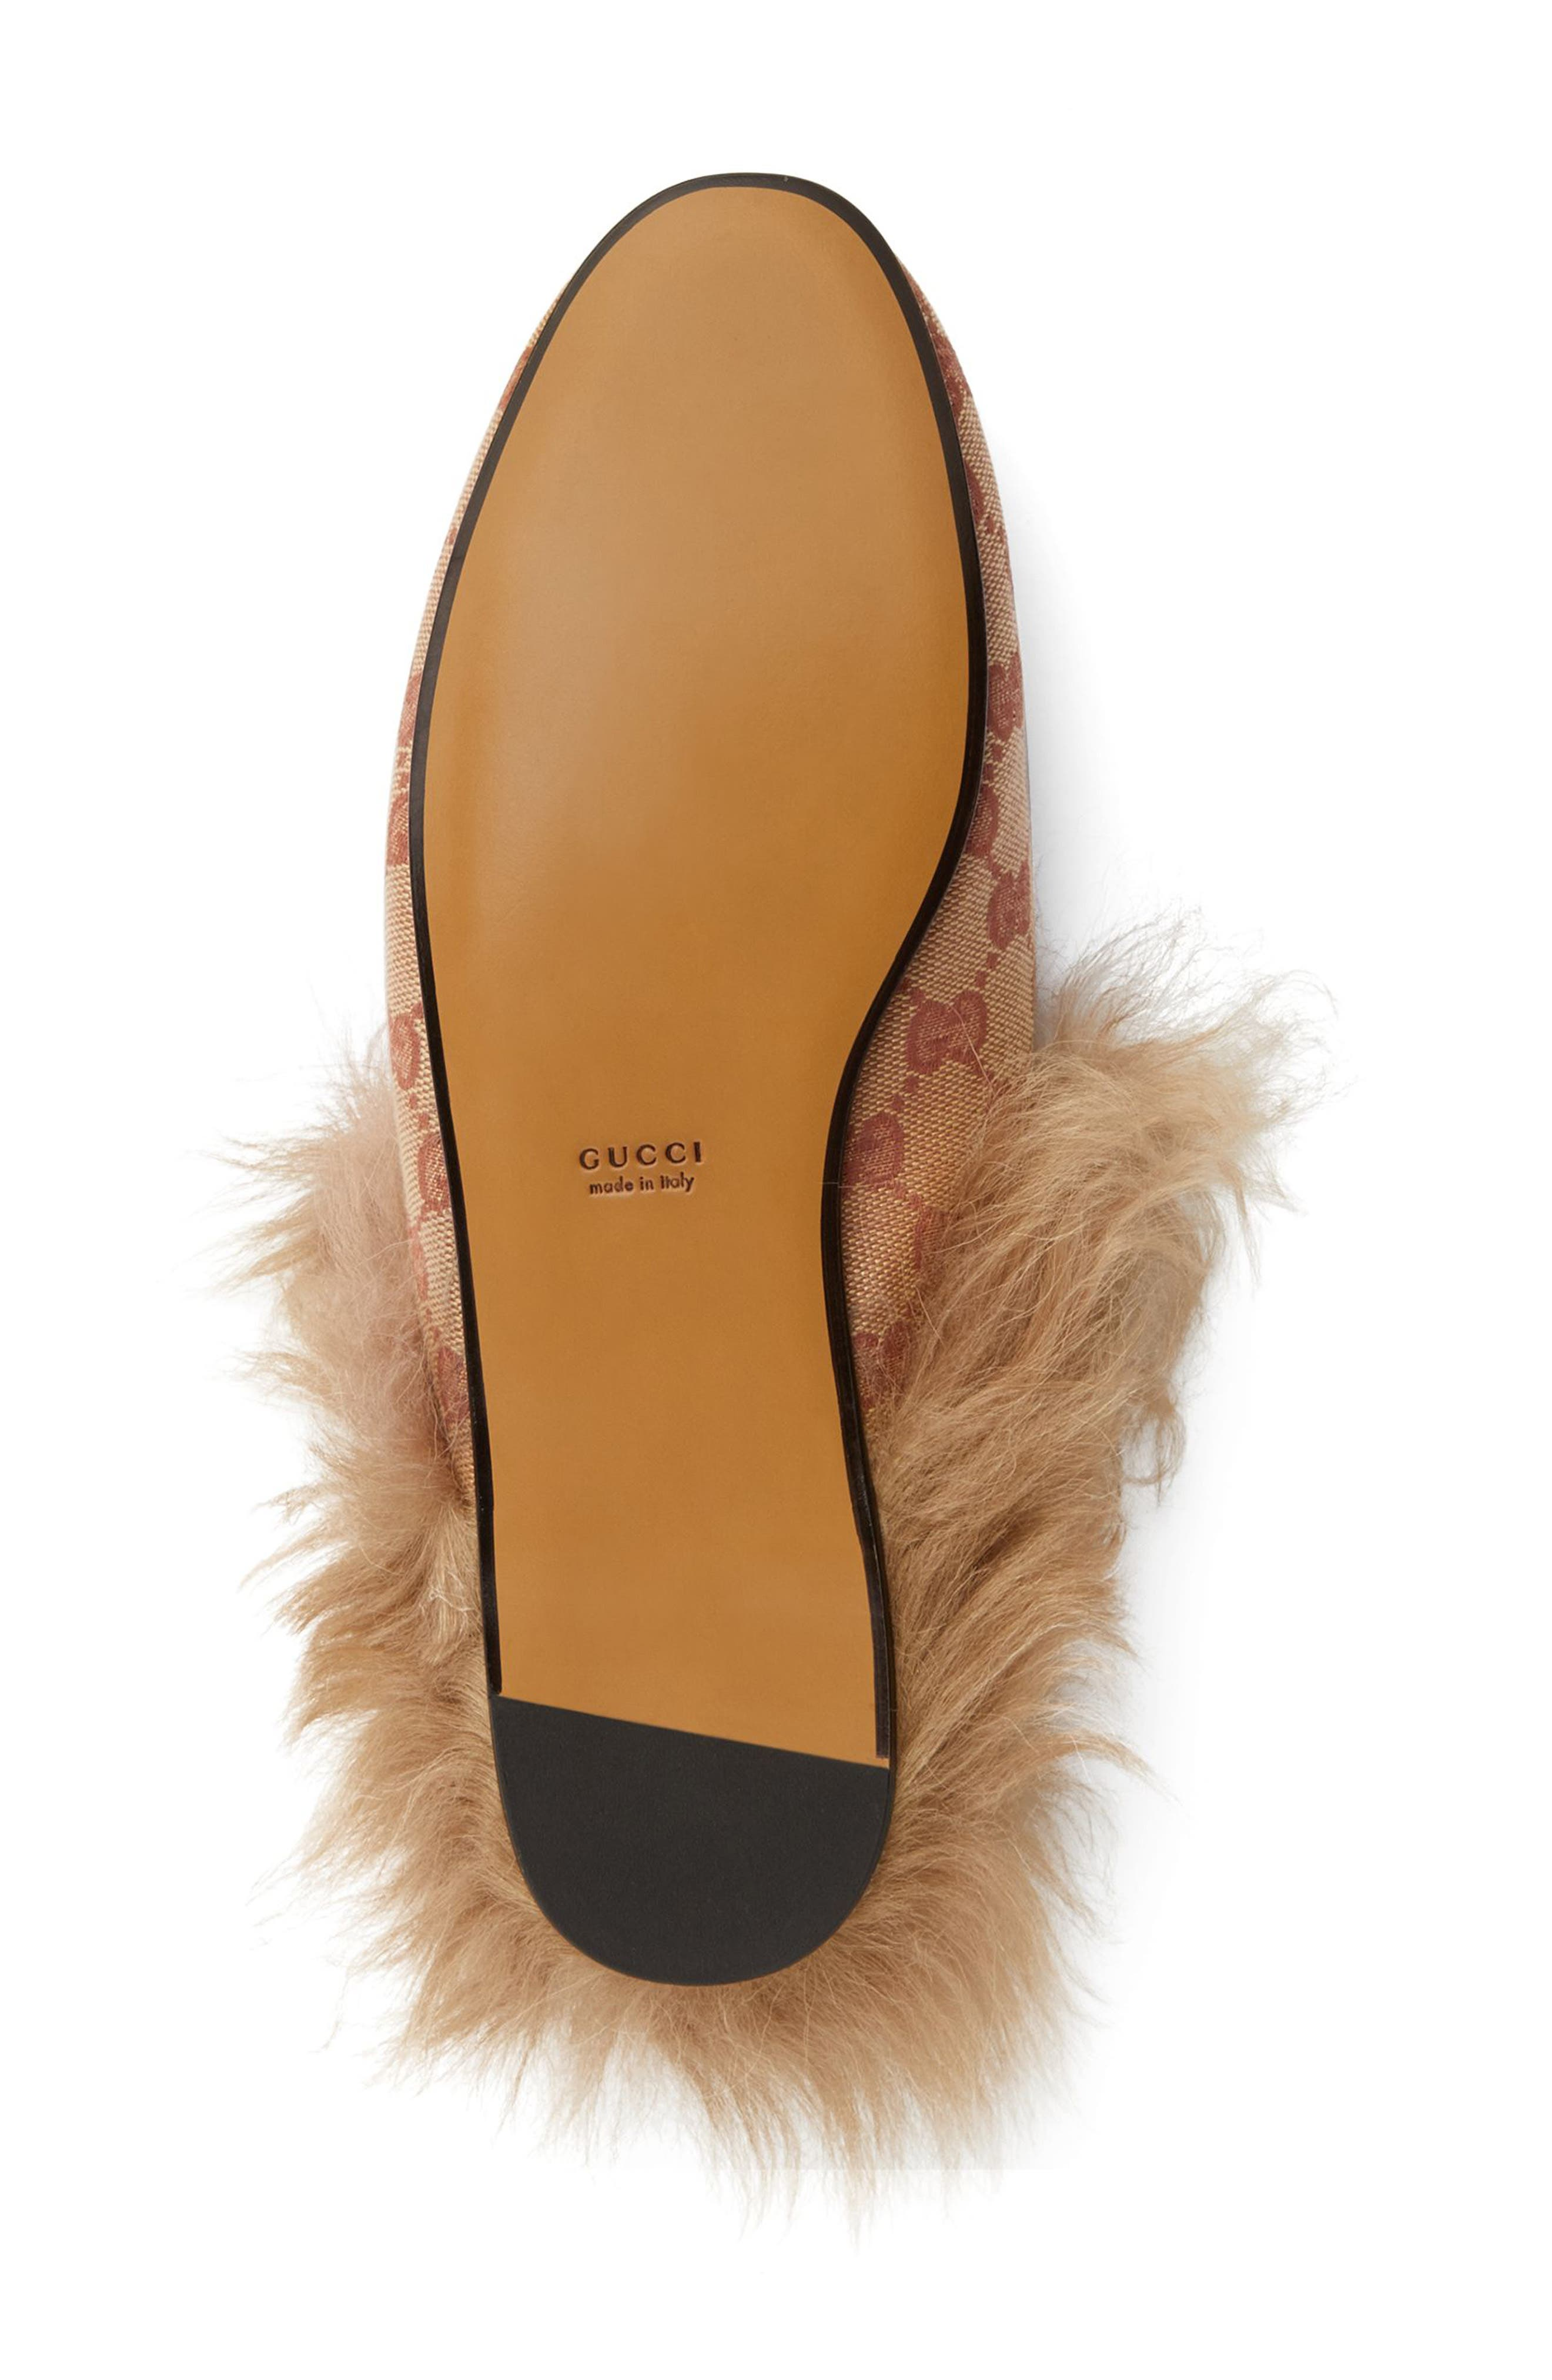 GUCCI, Princetown Genuine Shearling Logo Mule, Alternate thumbnail 5, color, BEIGE